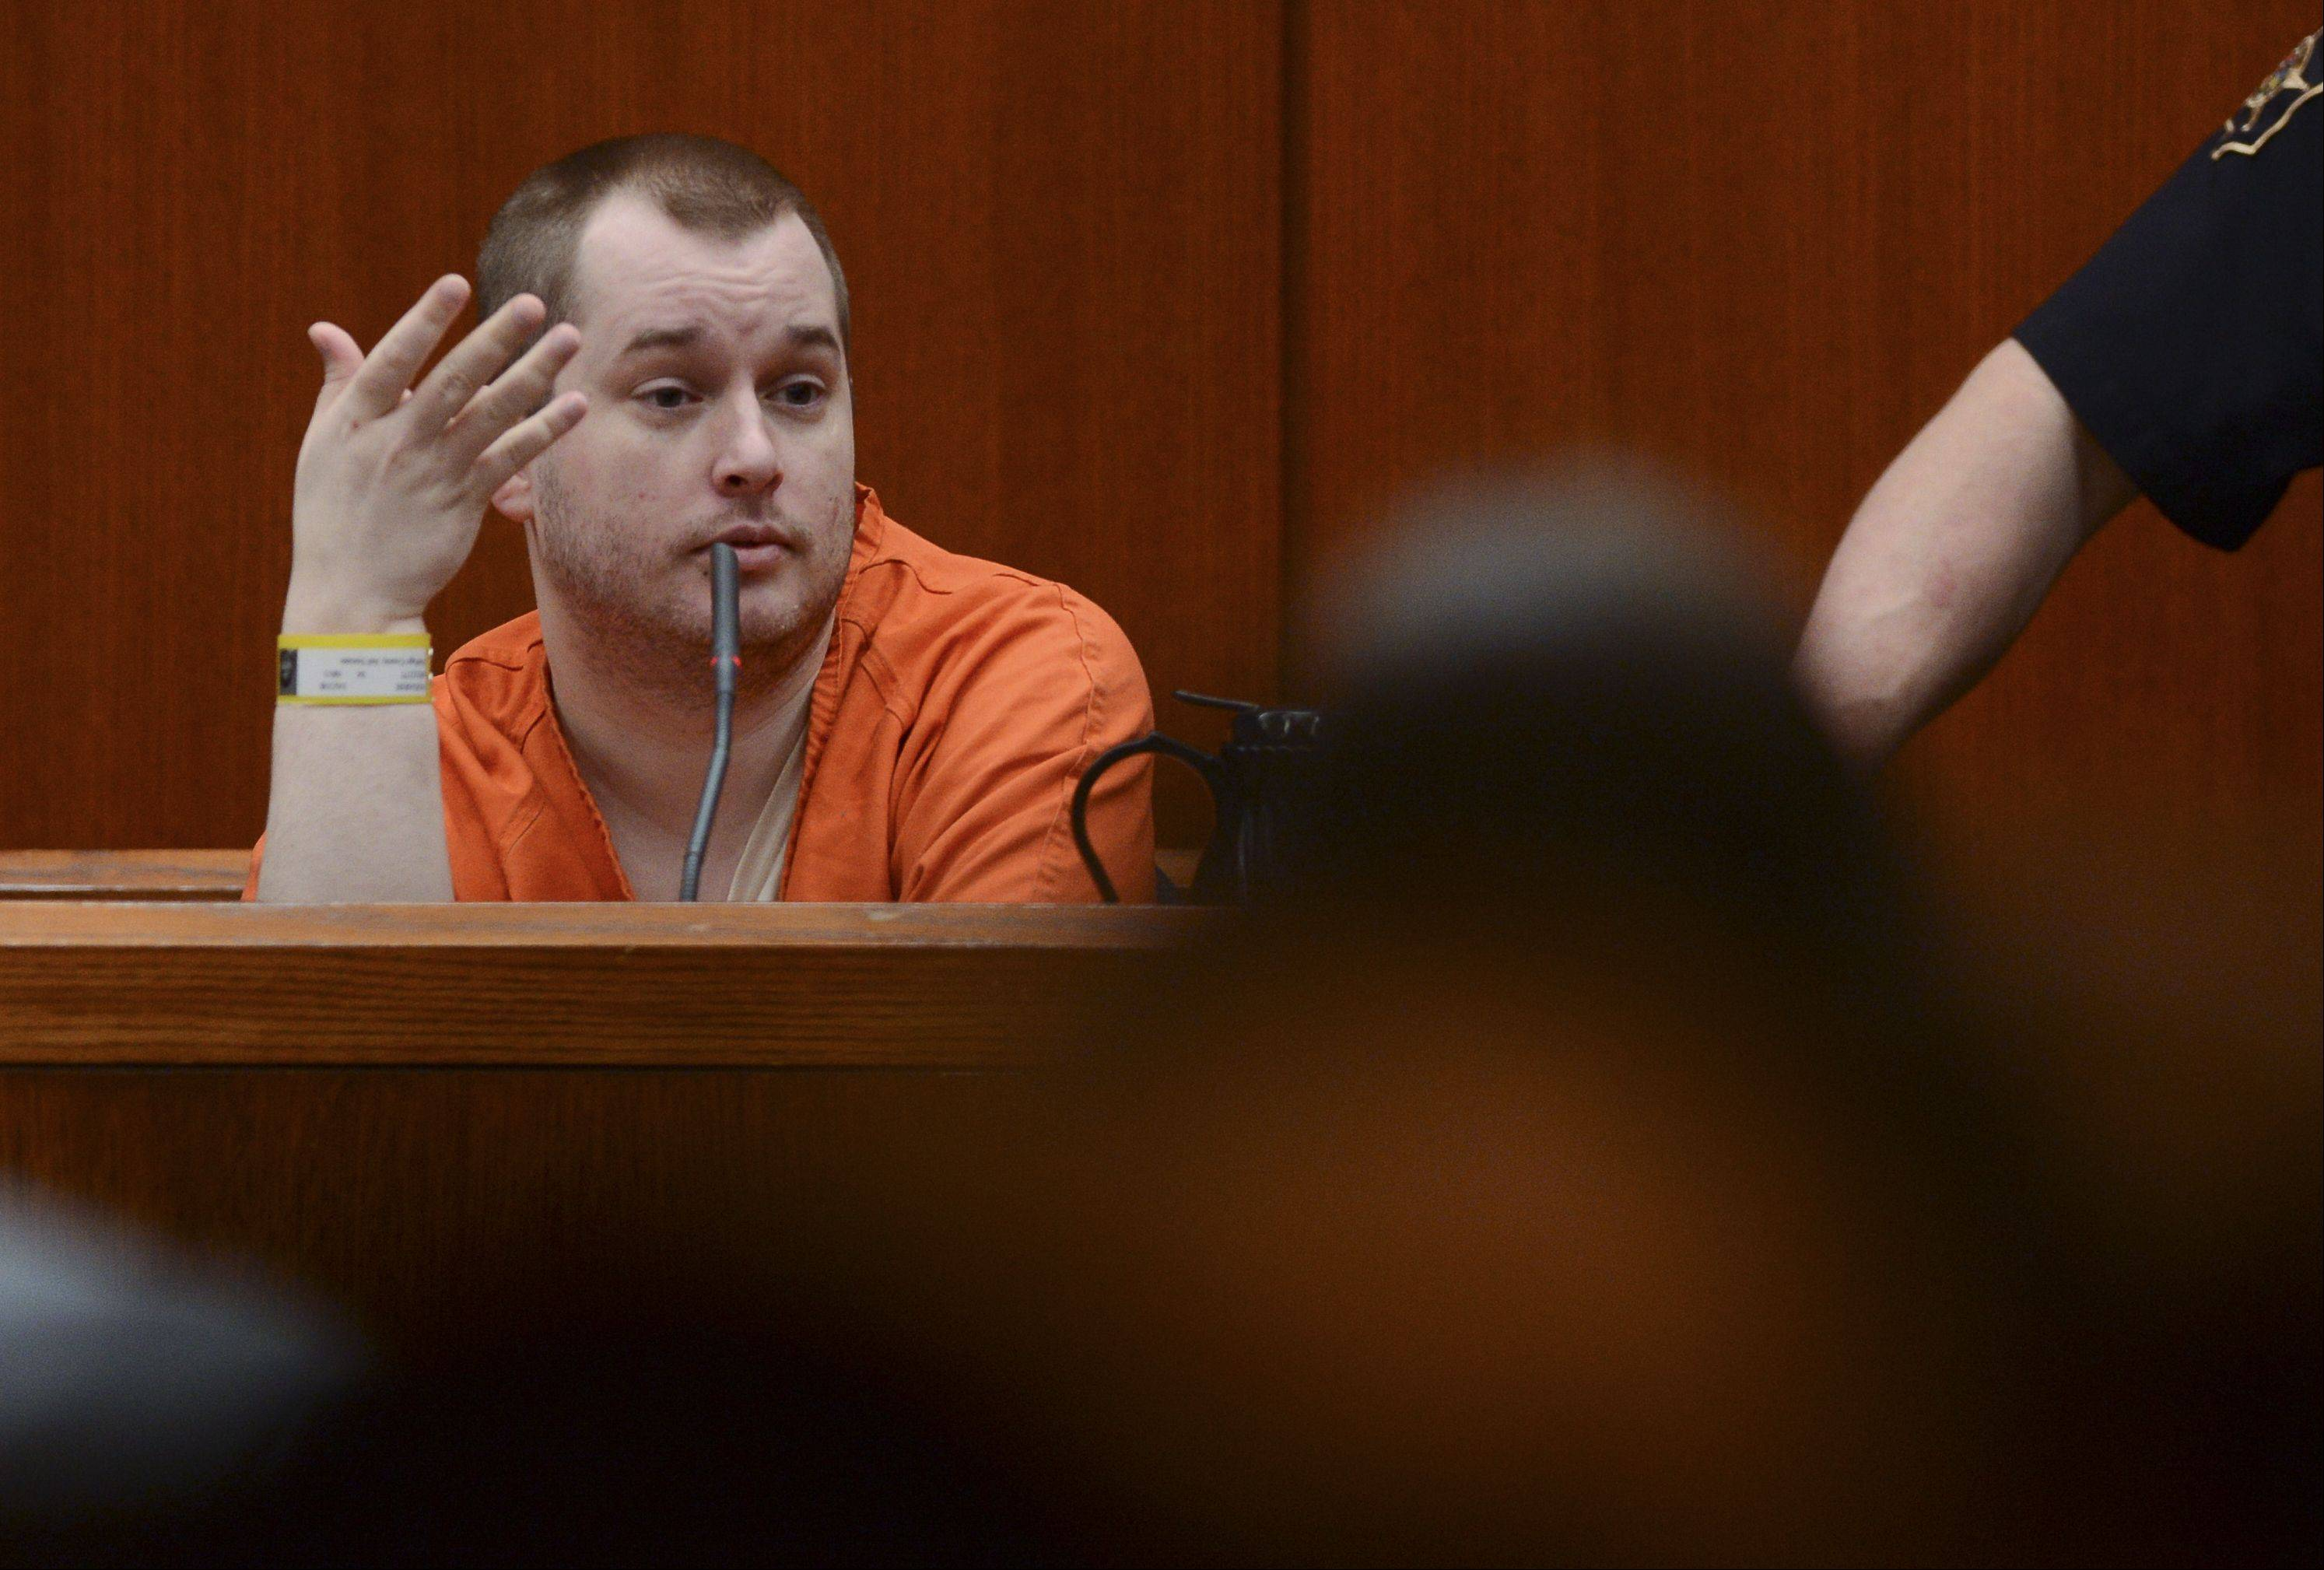 Witness Jacob Nodarse answers questions during cross examination in the murder trial of Johnny Borizov at DuPage County Courthouse in Wheaton Tuesday, April 30, 2013.